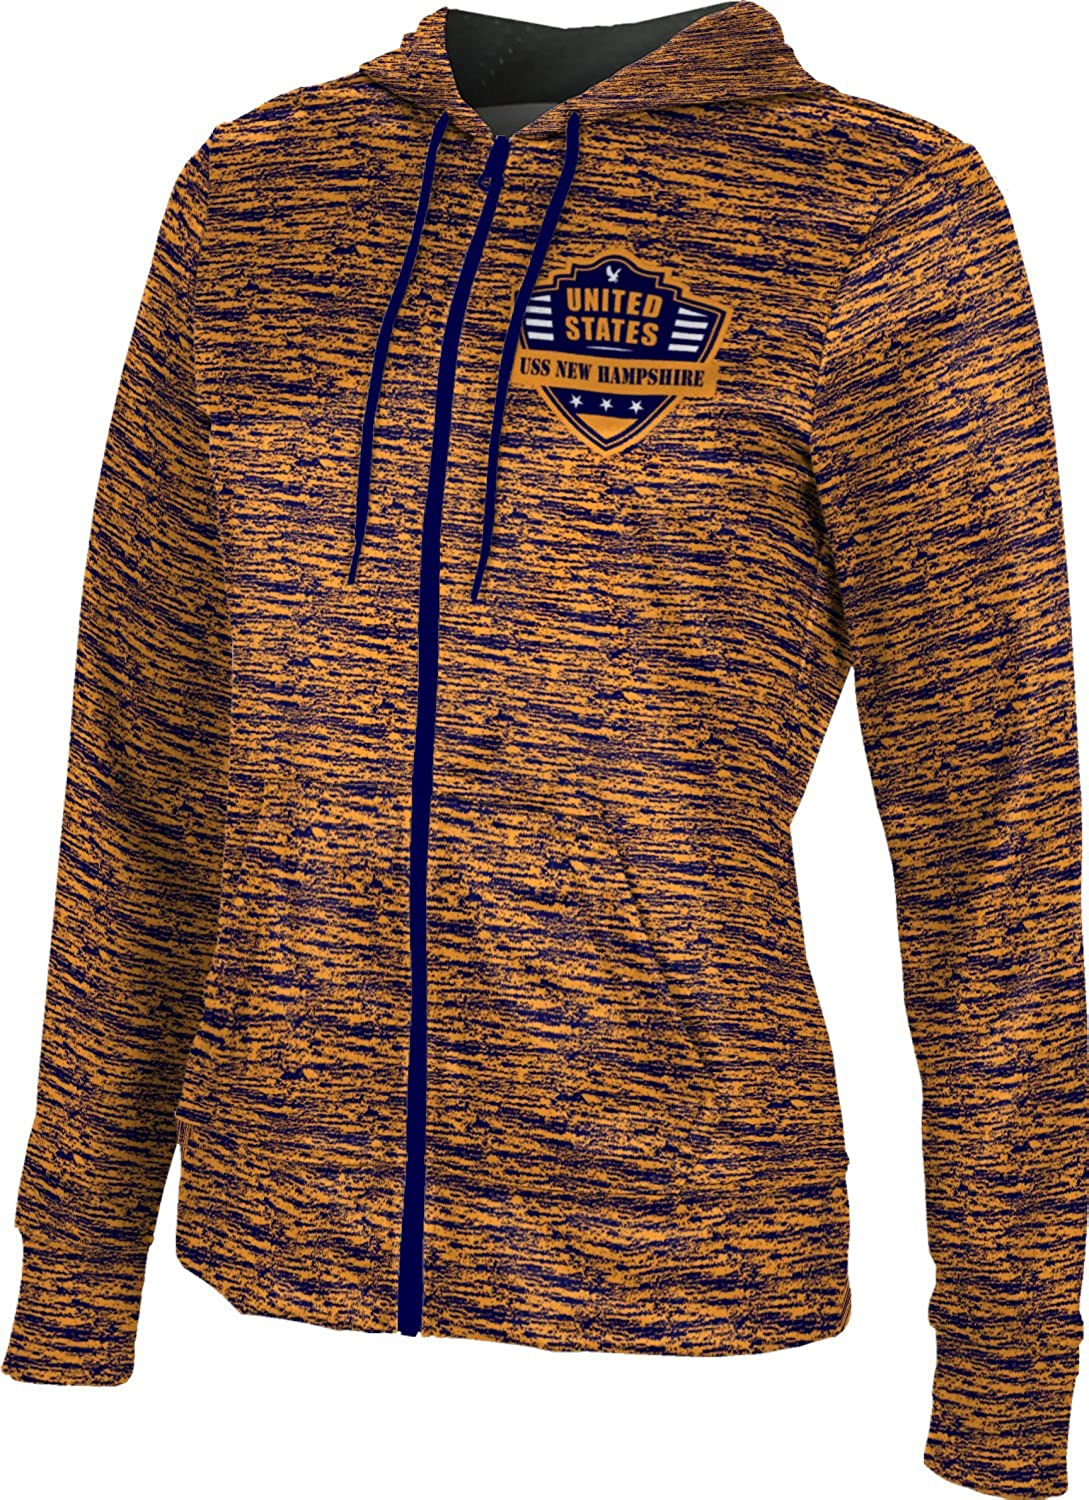 ProSphere Women's USS New Hampshire Military Brushed Fullzip Hoodie